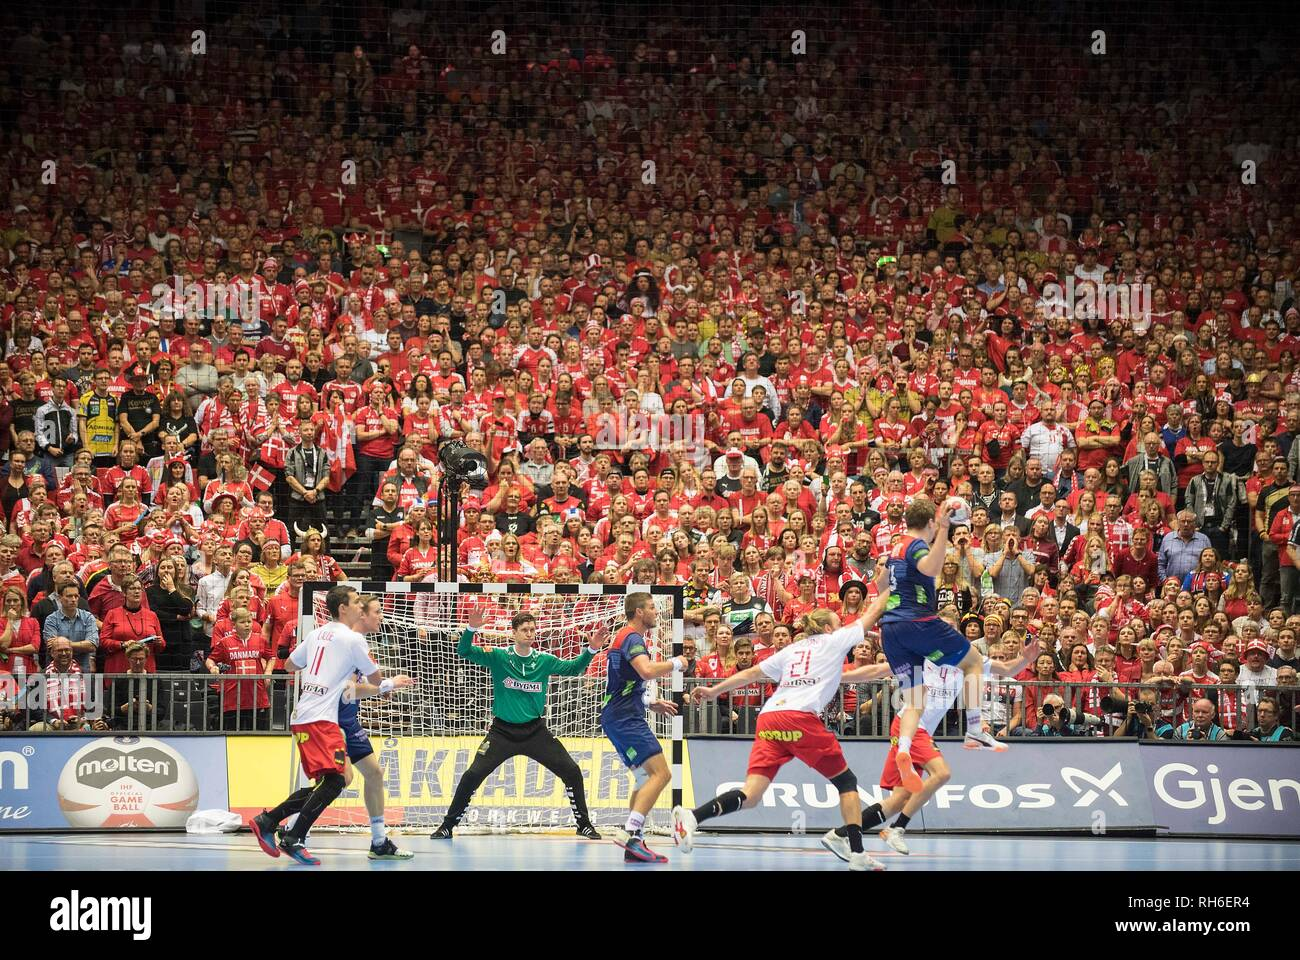 Feature, a red wall with the fans from the watch the match, Sander SAGOSEN (NOR) has the ball, goalkeeper Niklas LANDIN (DEN) in goal, Action, Final, Norway (NOR) - Denmark (DEN) 22:31, on 27.01.2019 in Herning/Denmark Handball World Cup 2019, from 10.01. - 27.01.2019 in Germany/Denmark.   usage worldwide Stock Photo